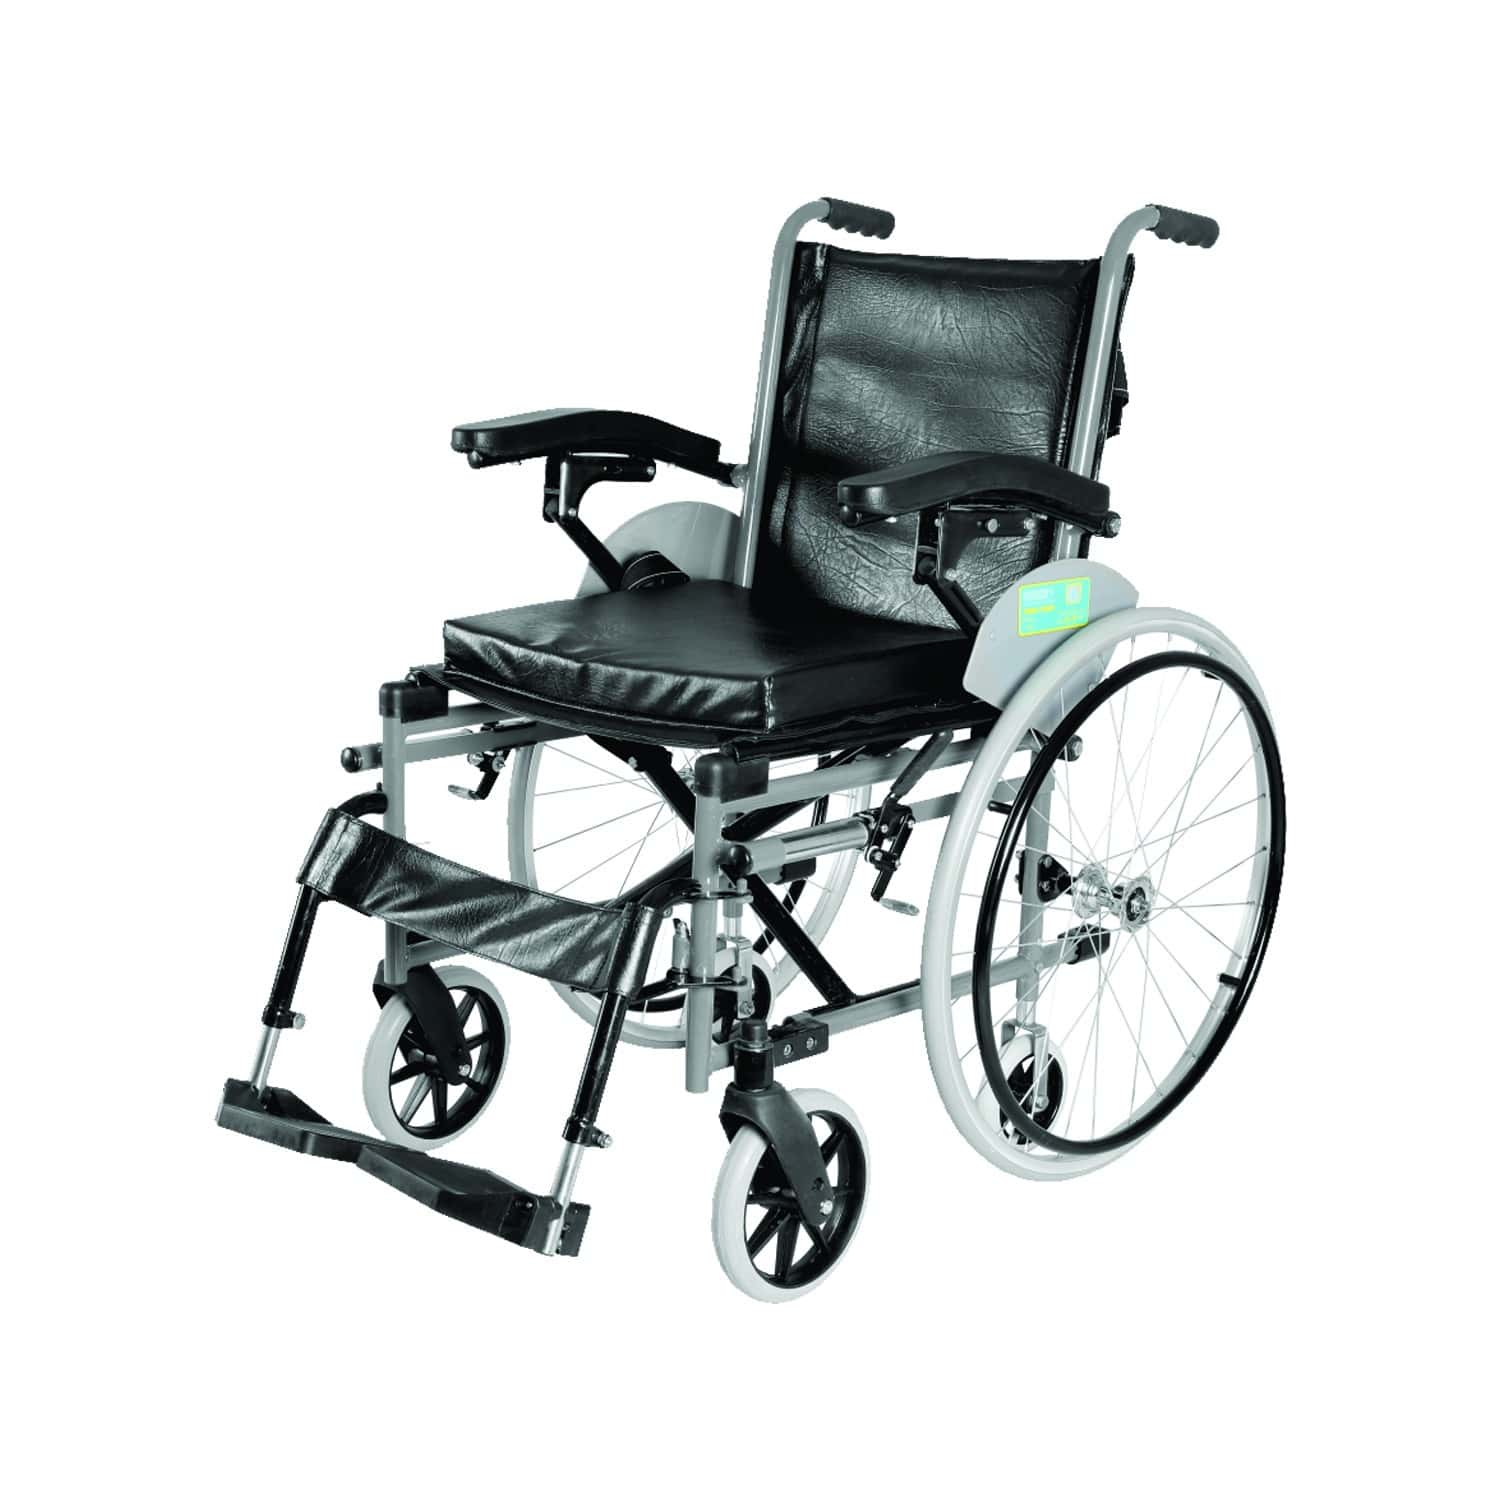 Vissco Imperio Wheelchair With Removable Big Wheels (spoke Wheels)